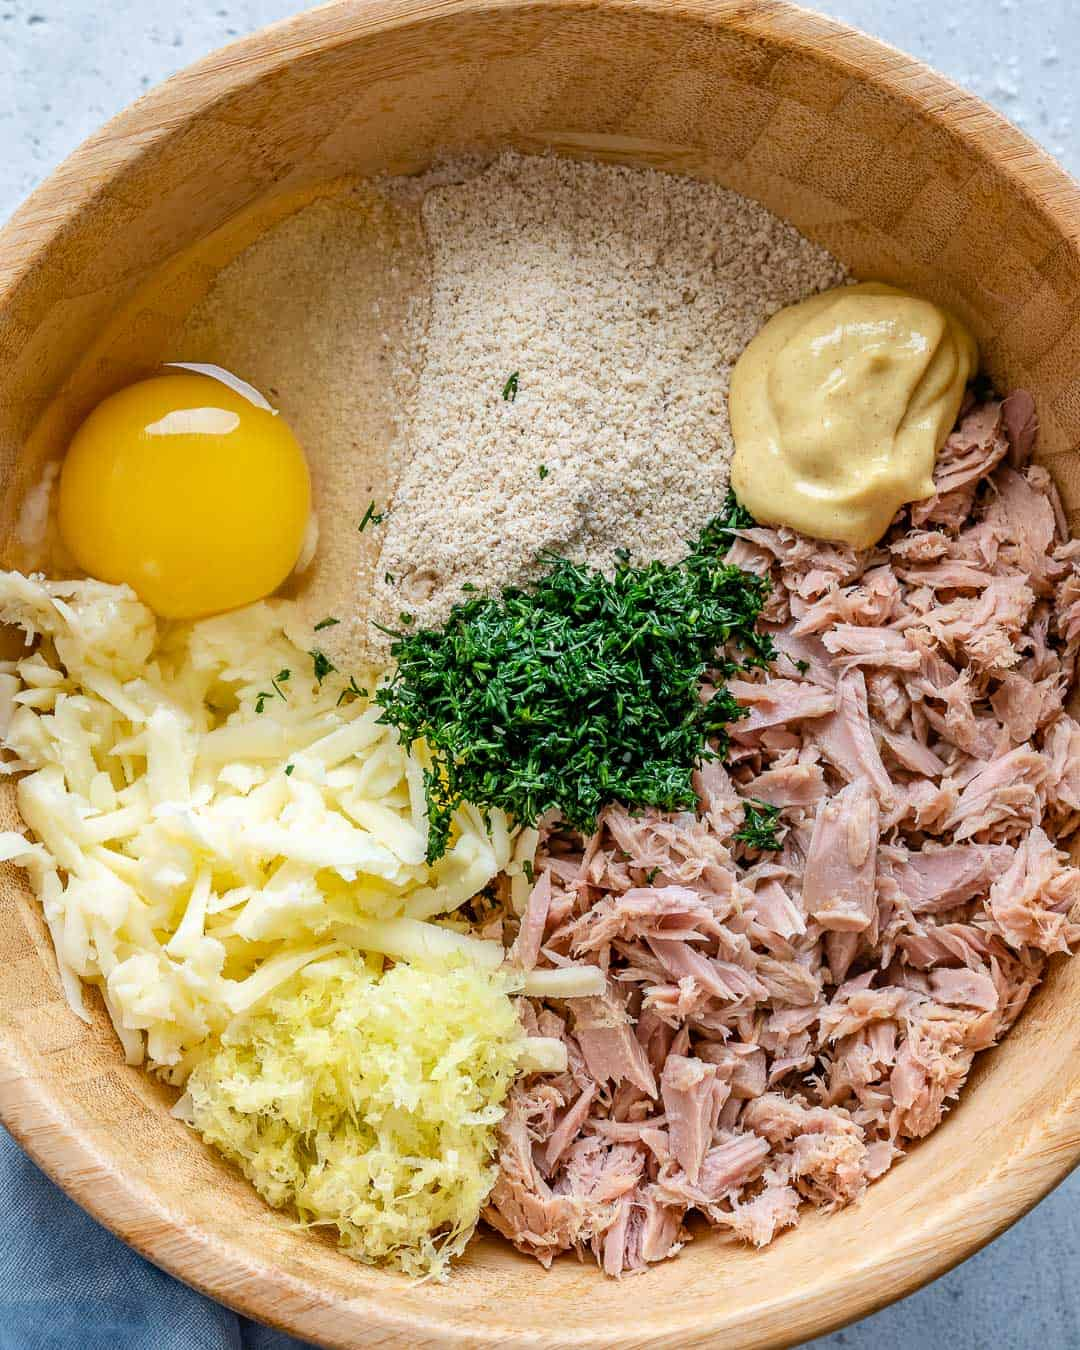 ingredients for the tuna patties in a brown bowl, egg, lemon zest, almond flour, mozzarella cheese, tuna, dill, and mustard.